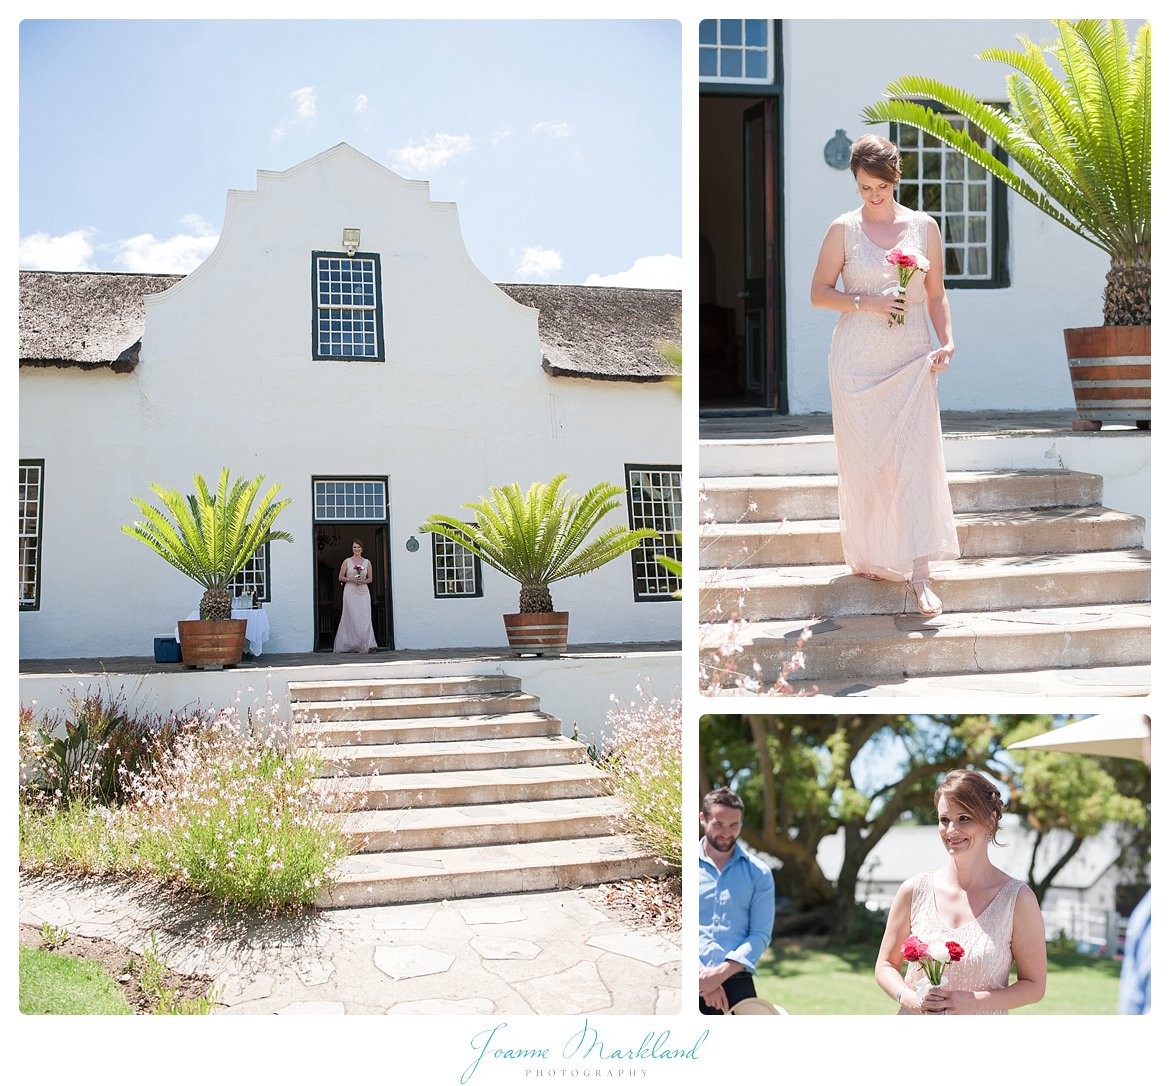 Grootepost-wedding-photography-joanne-markland-012